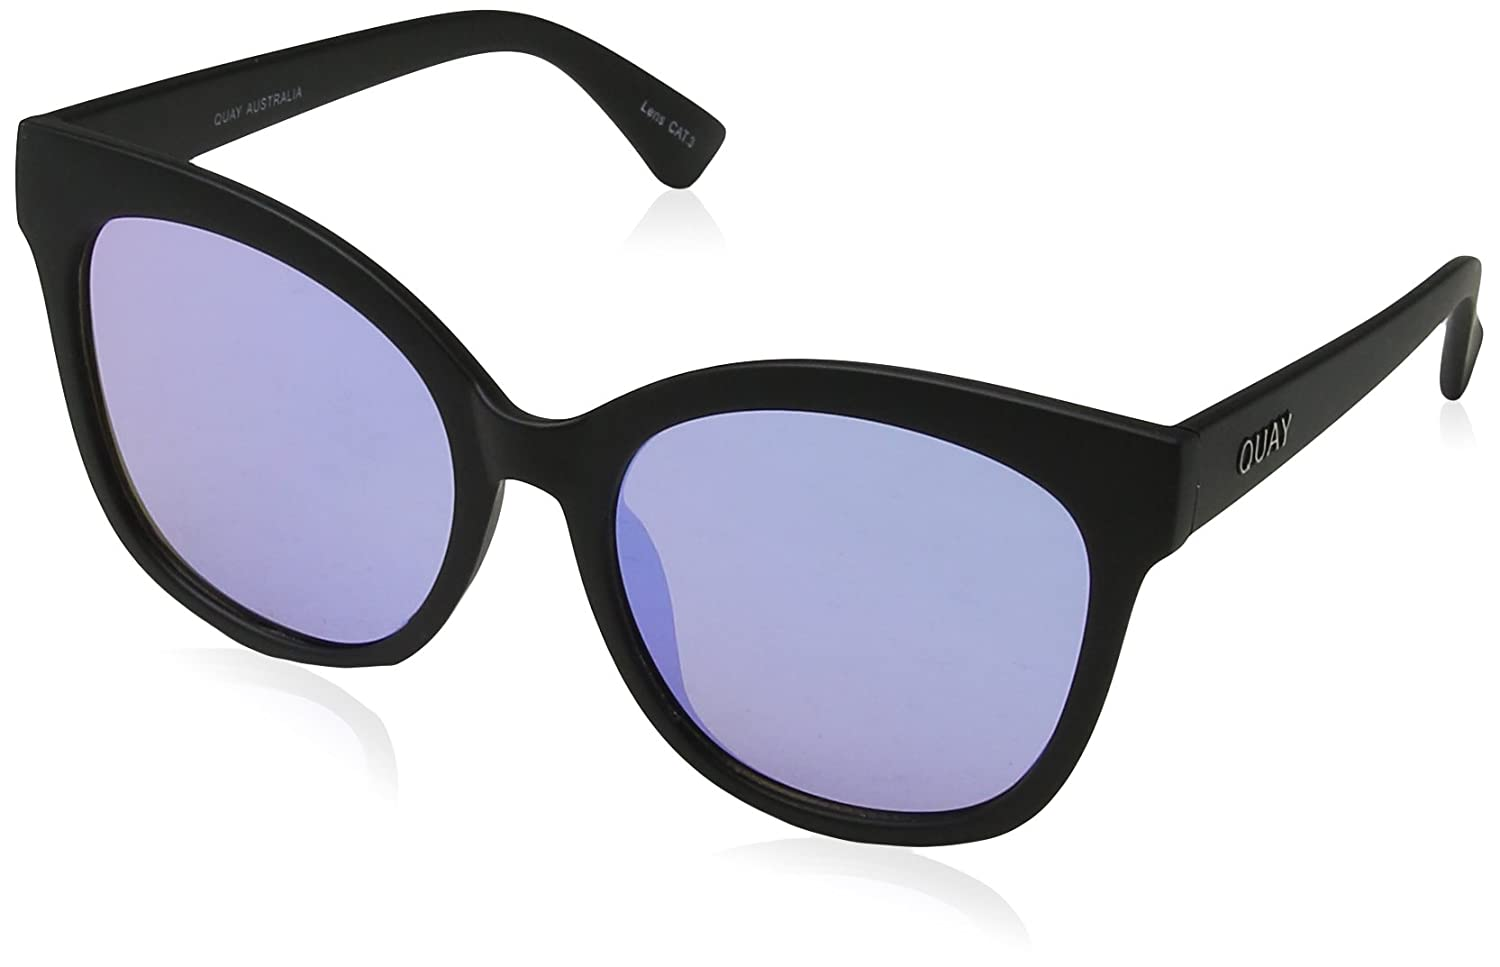 Lunettes de soleil Quay Australia QW-000144 ITS MY WAY Black //. DTjxYO